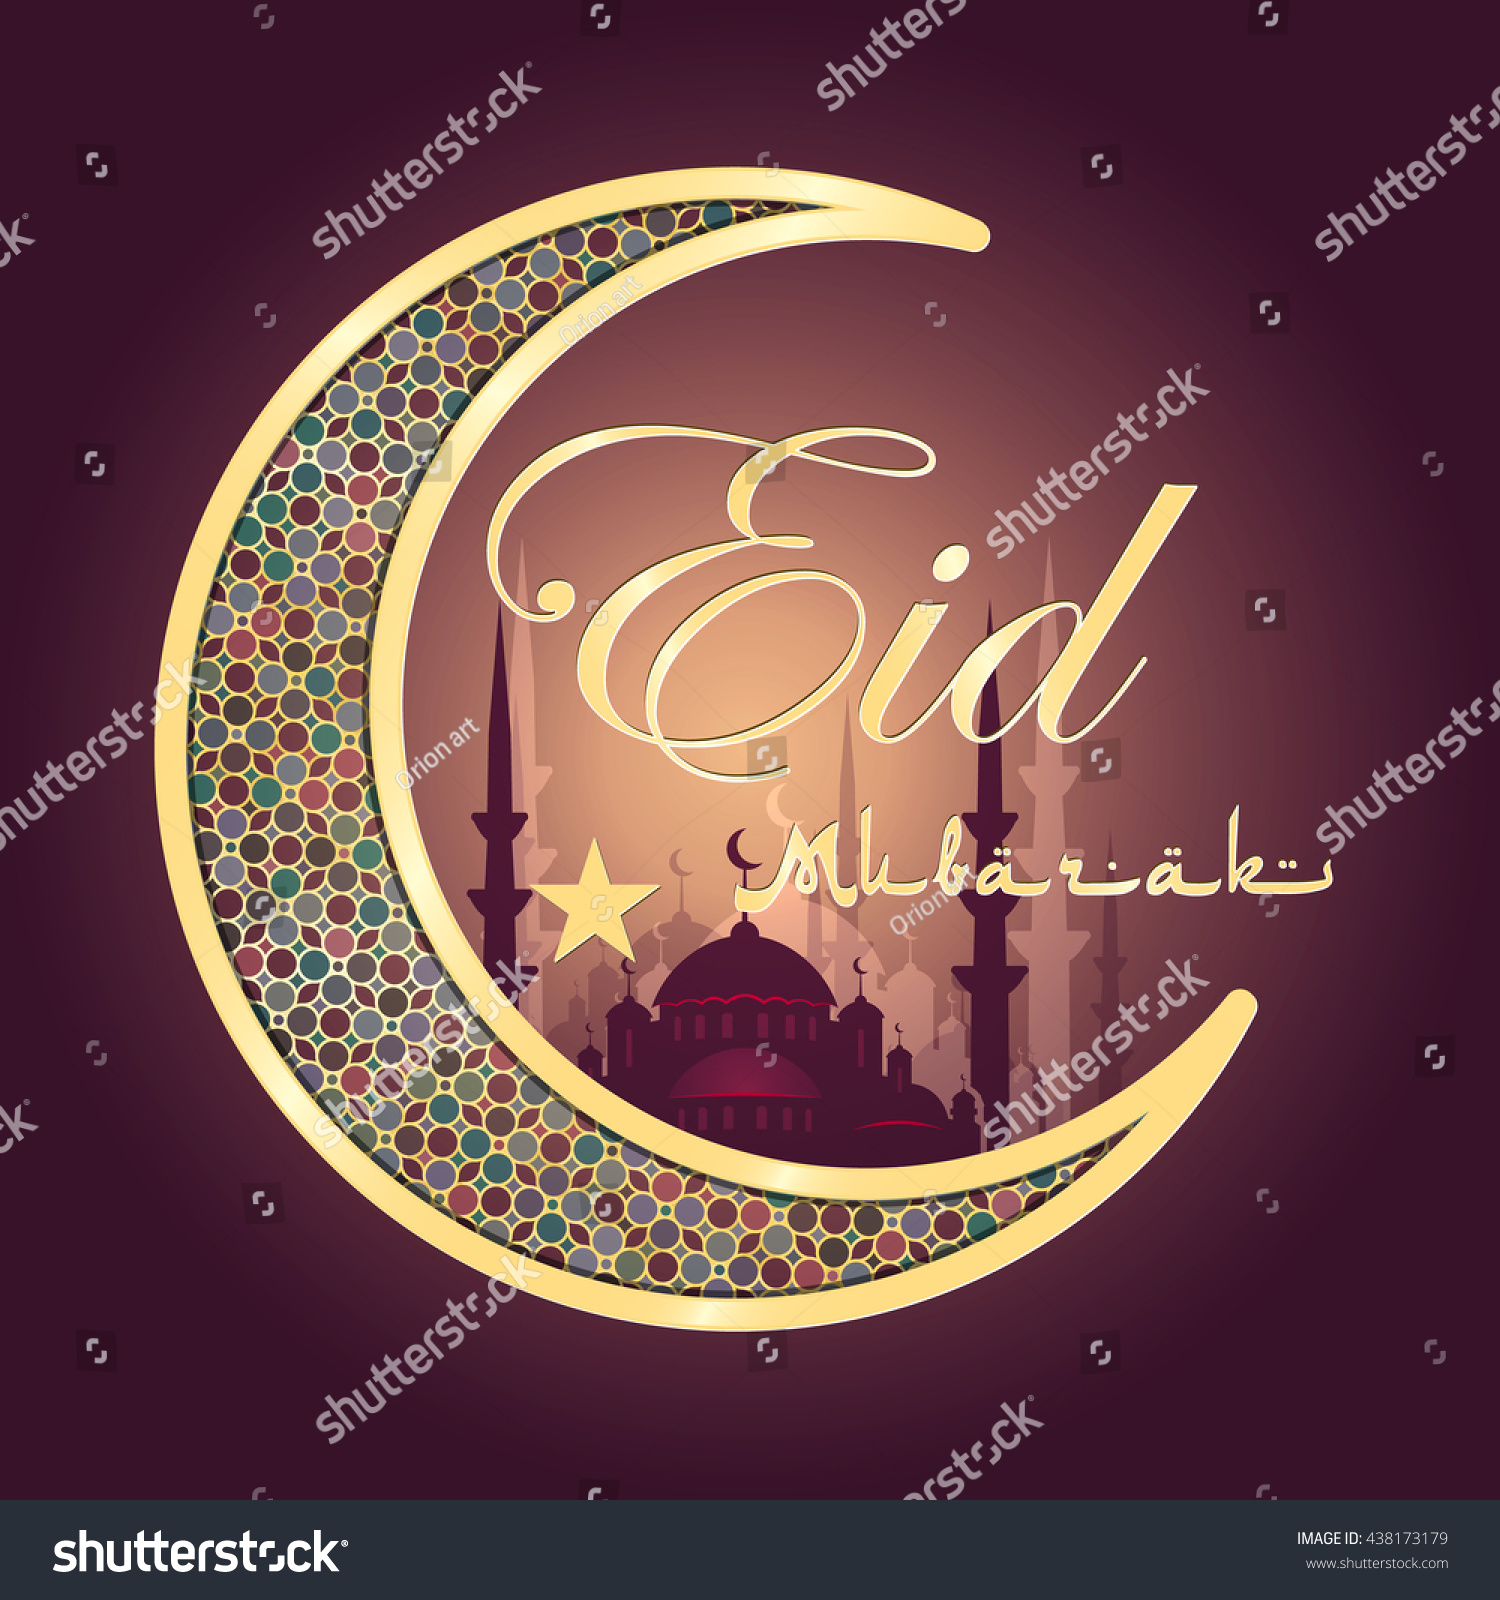 Calligraphy arabic text eid al fitr stock illustration 438173179 calligraphy of arabic text eid al fitr feast of breaking the fast kristyandbryce Choice Image